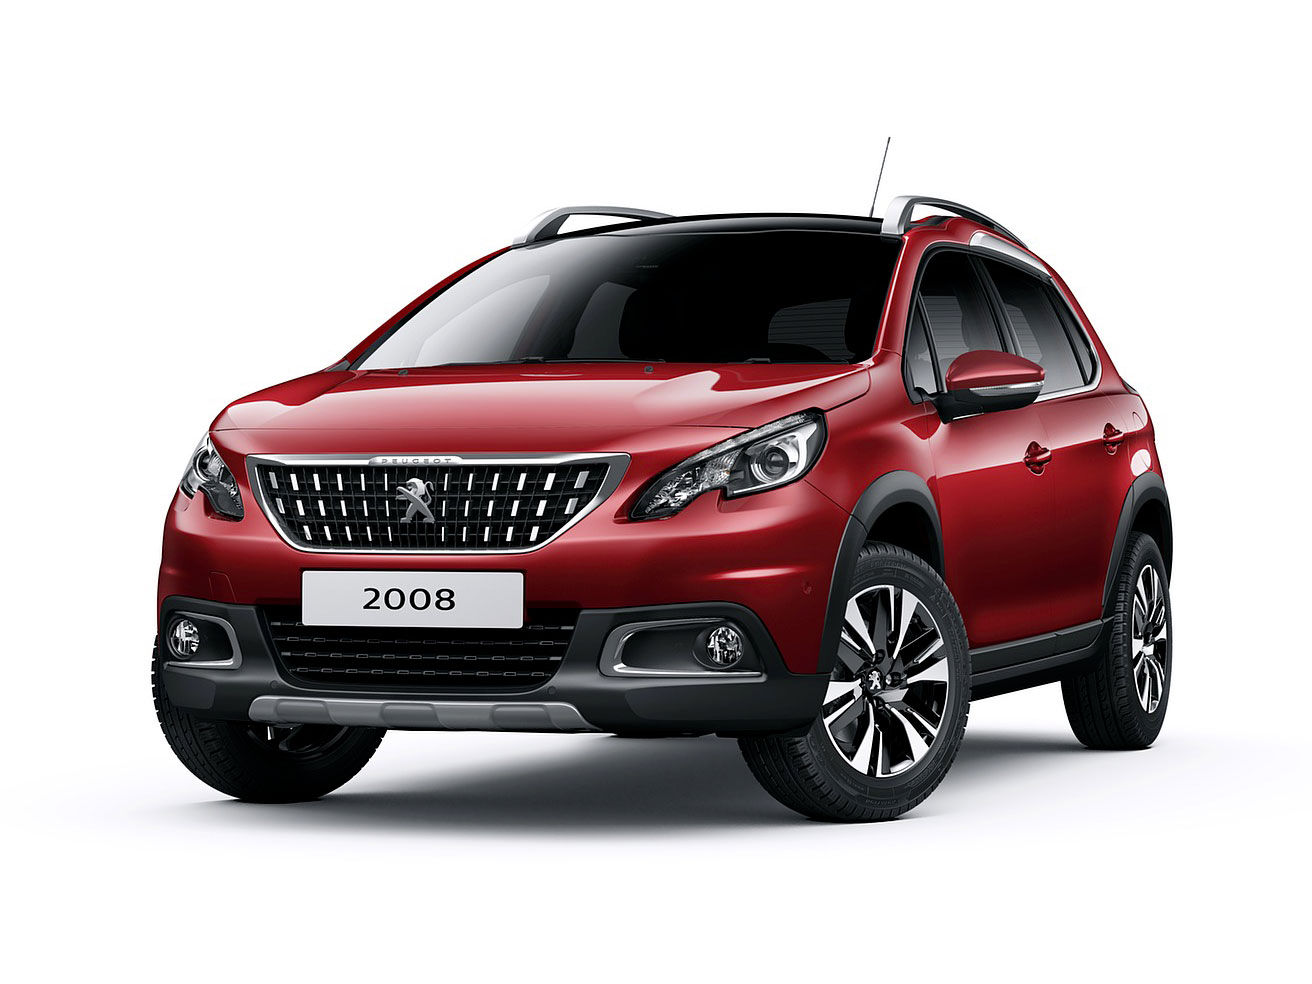 mandataire peugeot 2008 allure 1 2 pure tech turbo 130 ch s s